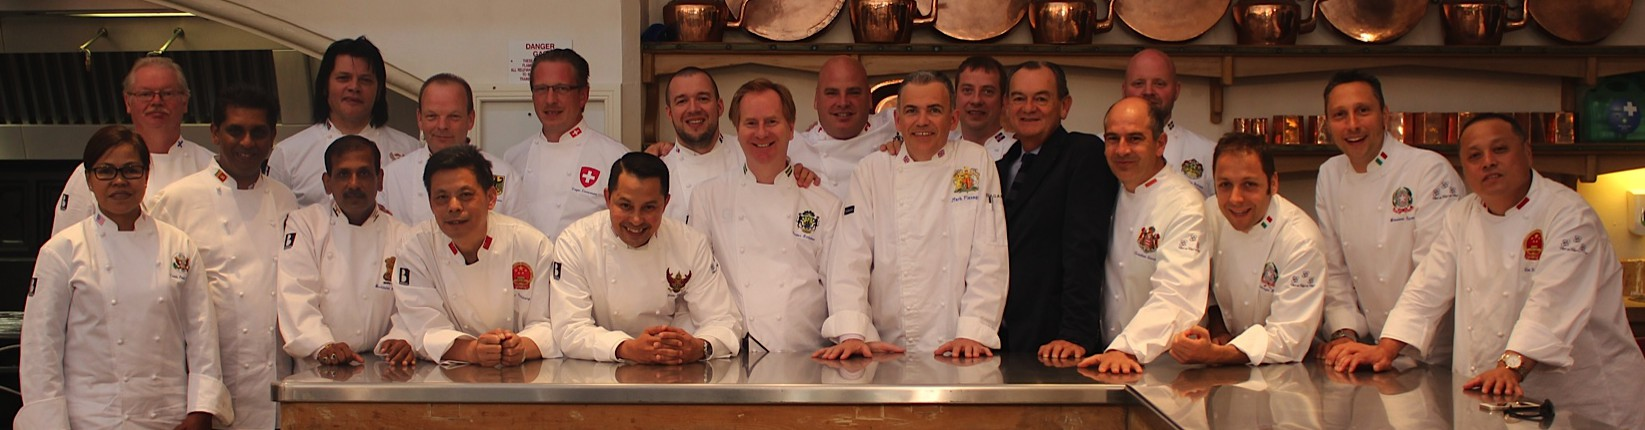 The Club des Chefs des Chefs